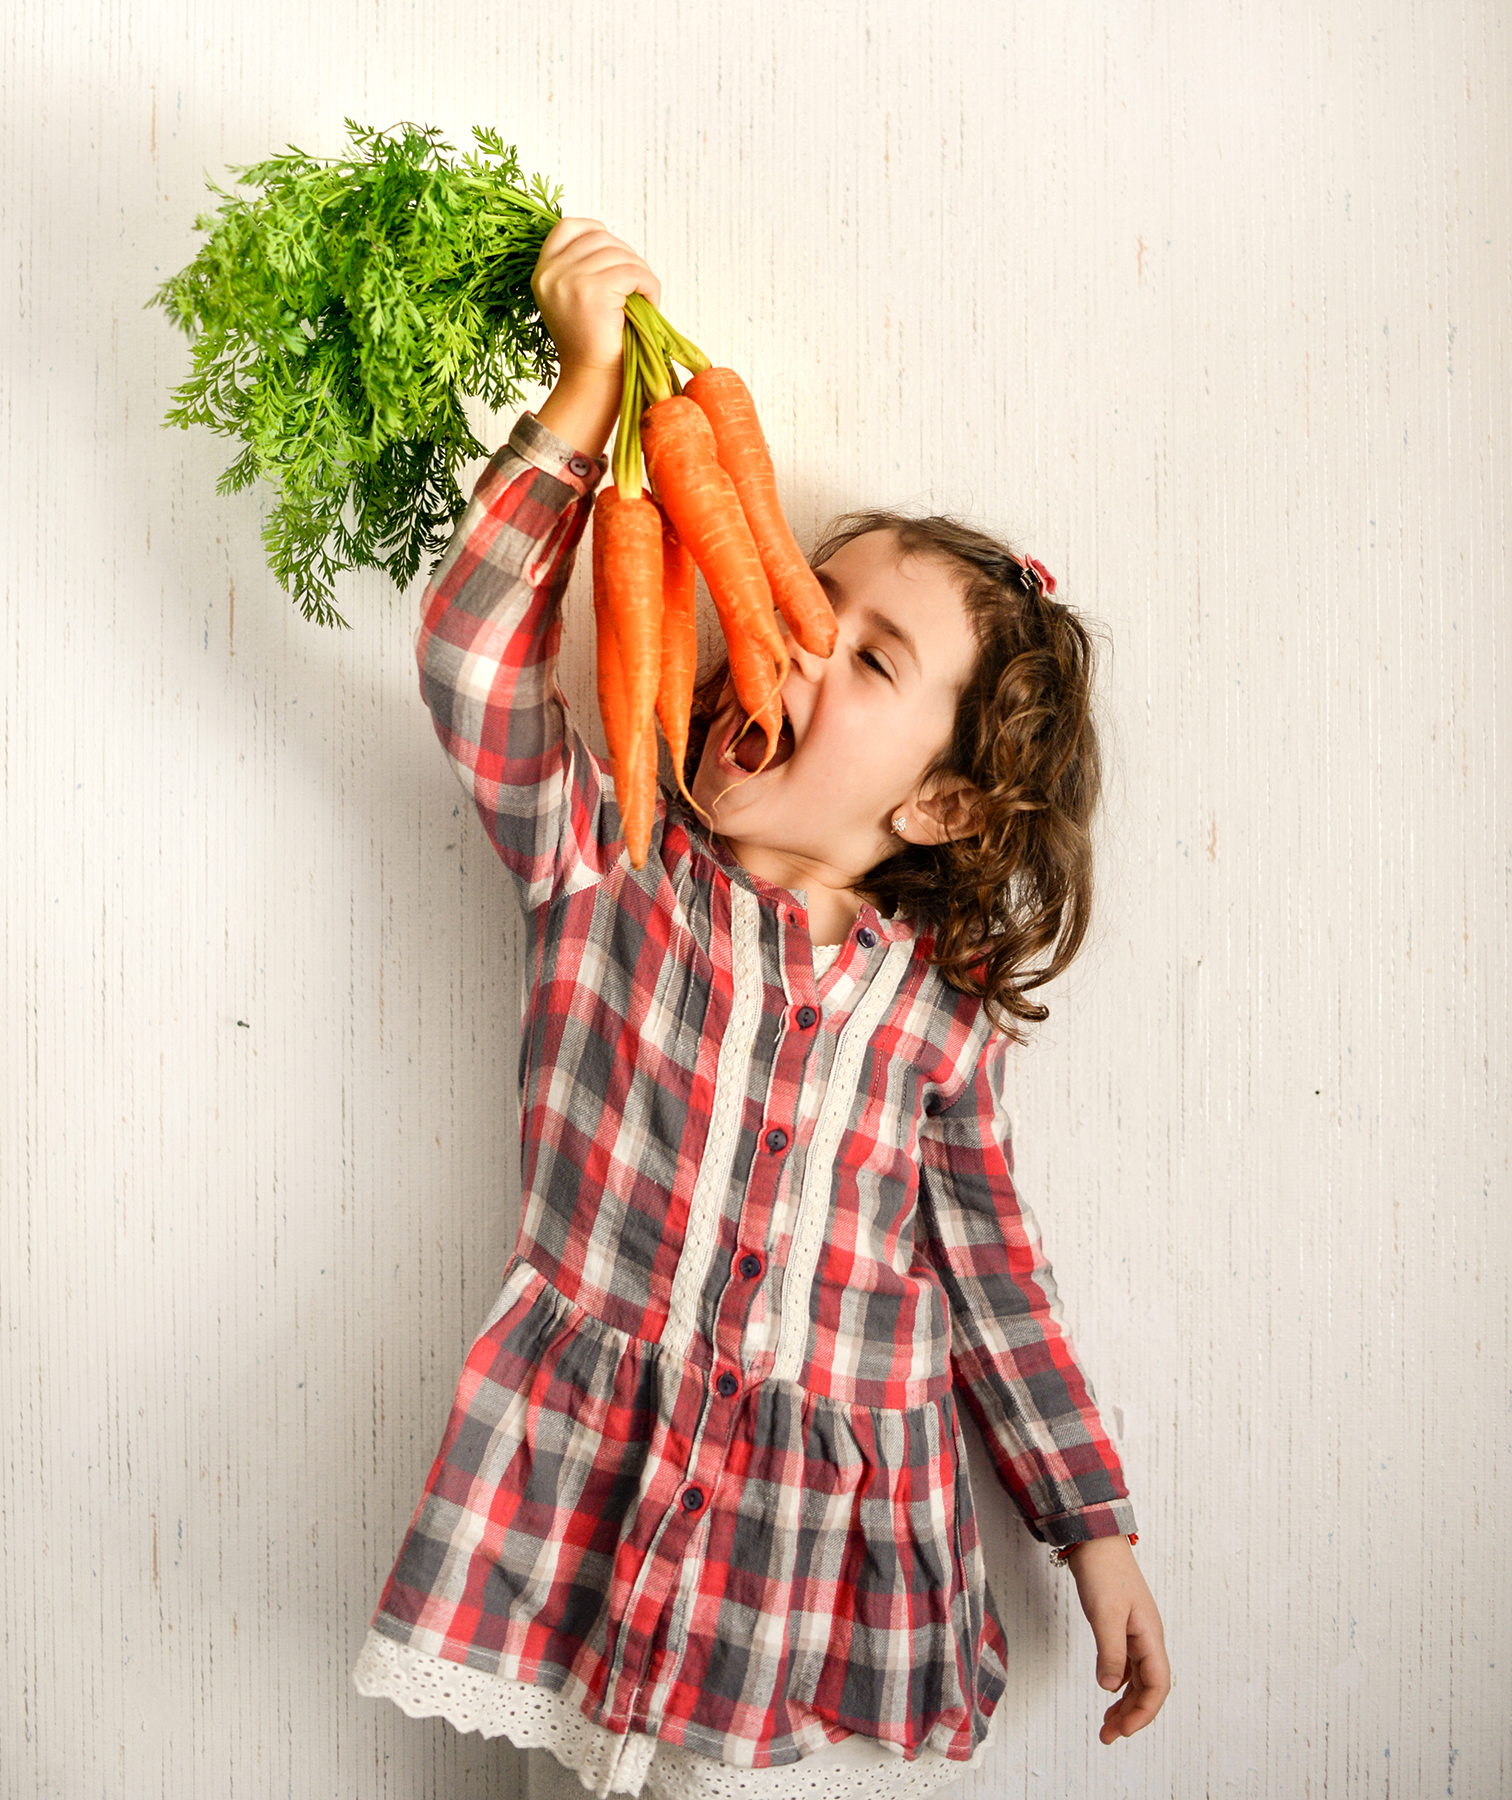 Little girl with bunch of carrots